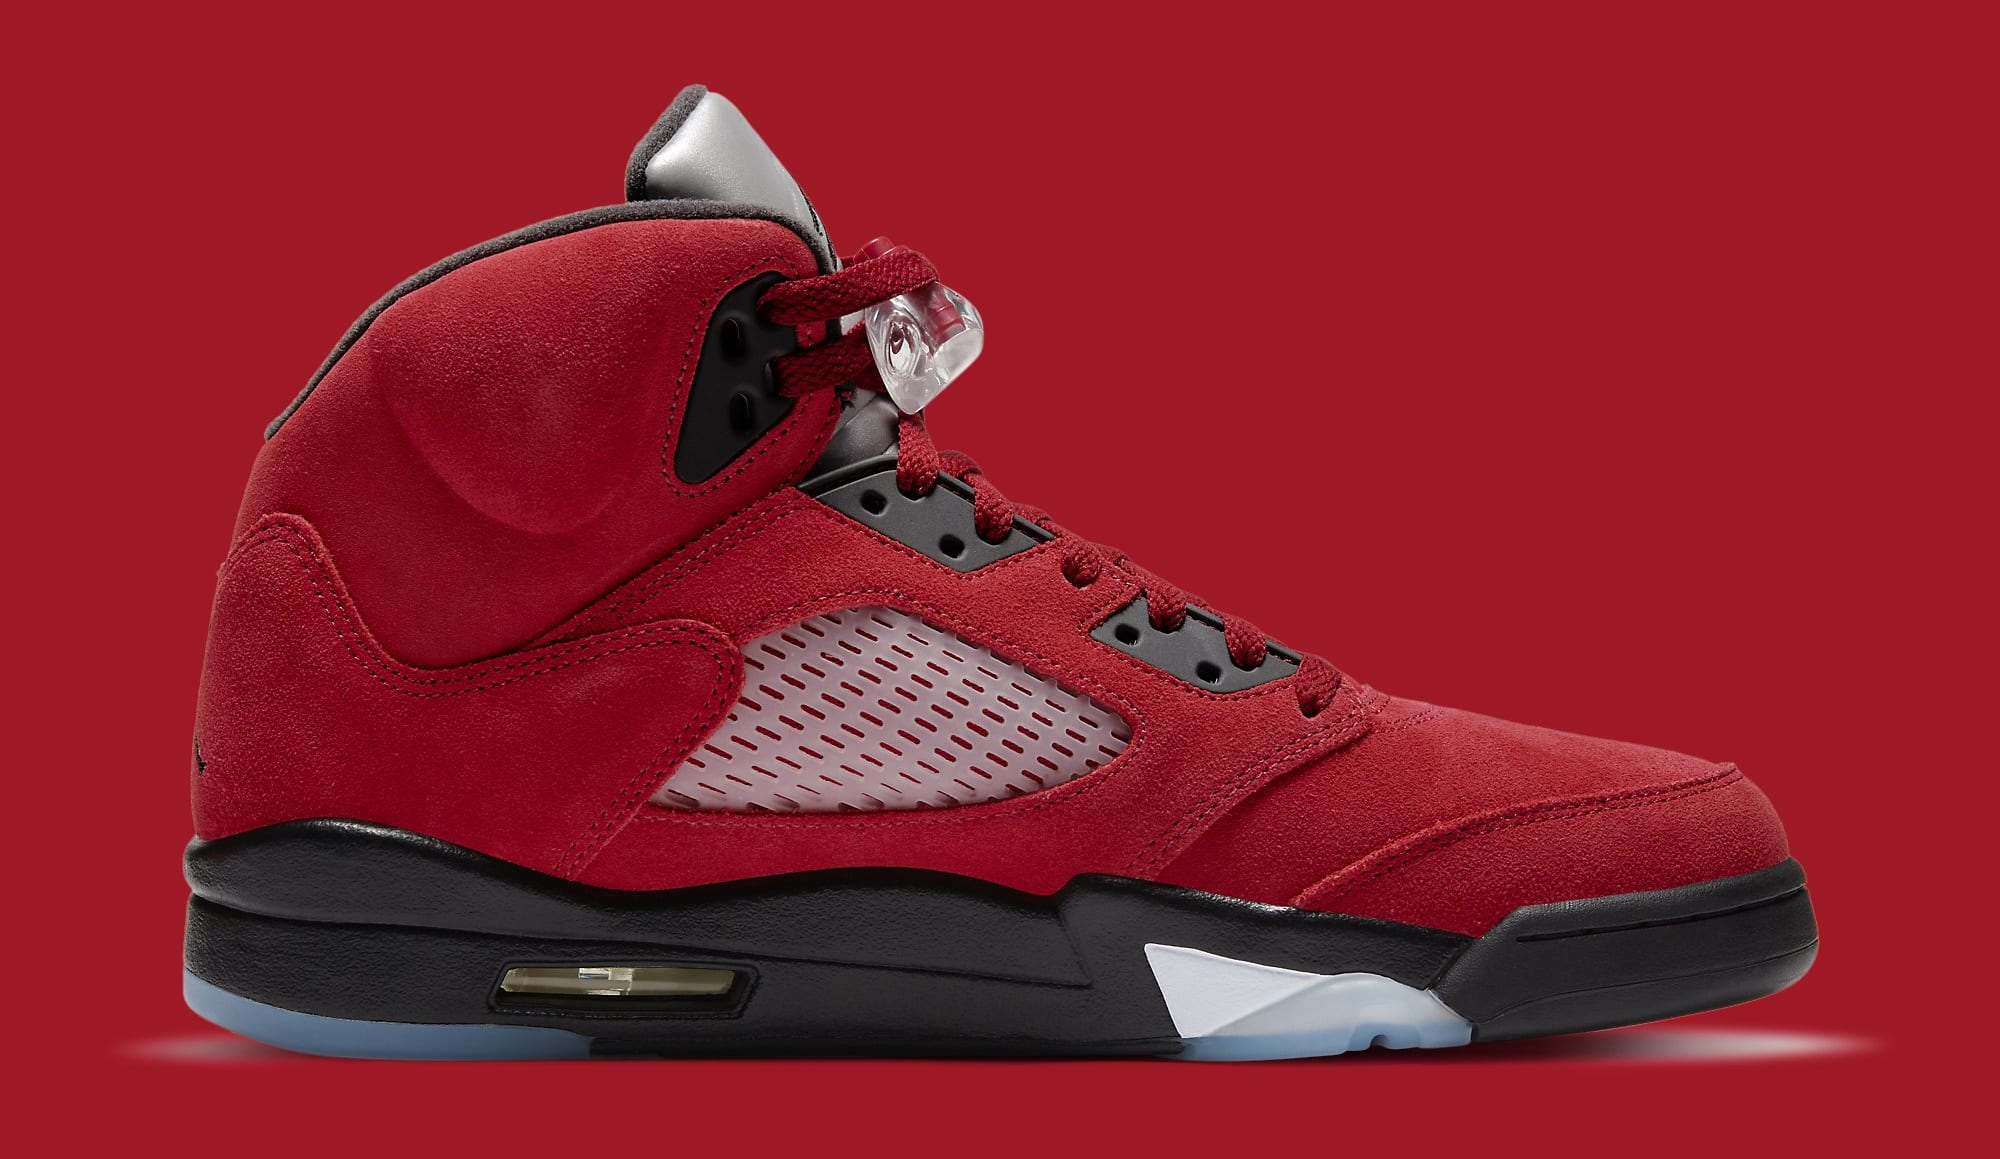 Air Jordan 5 Retro 'Raging Bull' 2021 DD0587-600 Medial